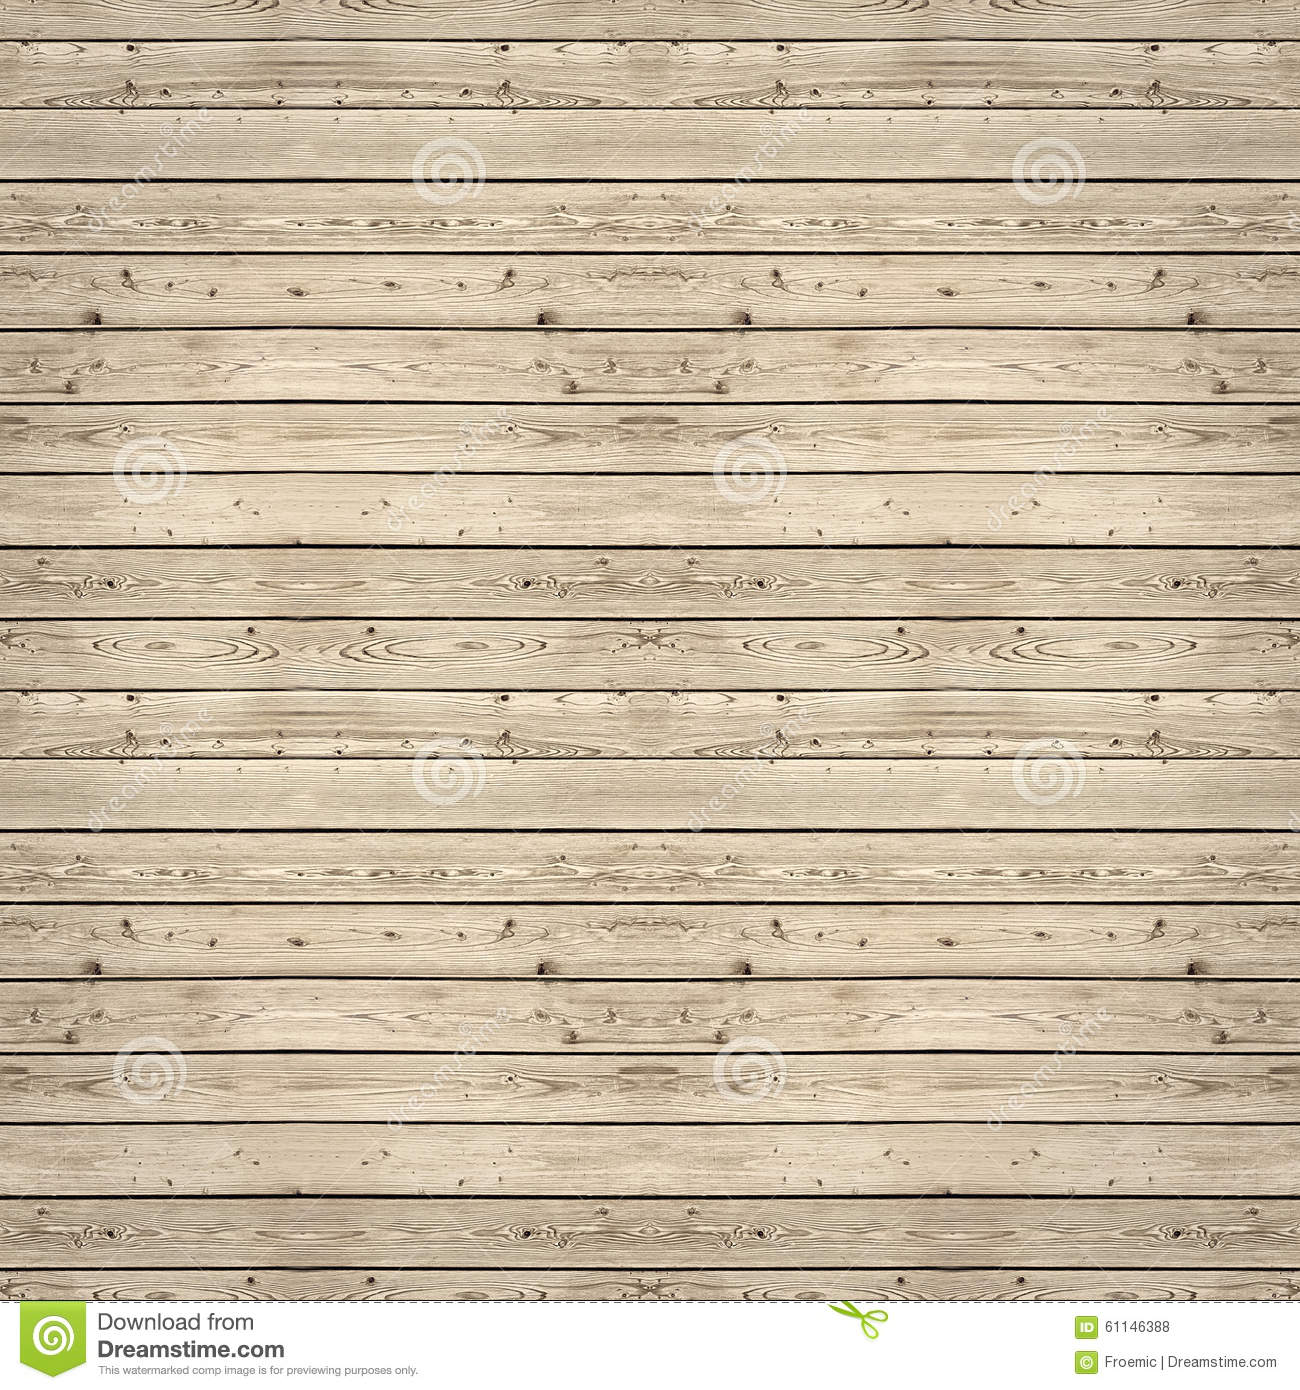 panel texture white wood ... - High Quality Wood Panel Texture Stock Photo - Image: 61146388